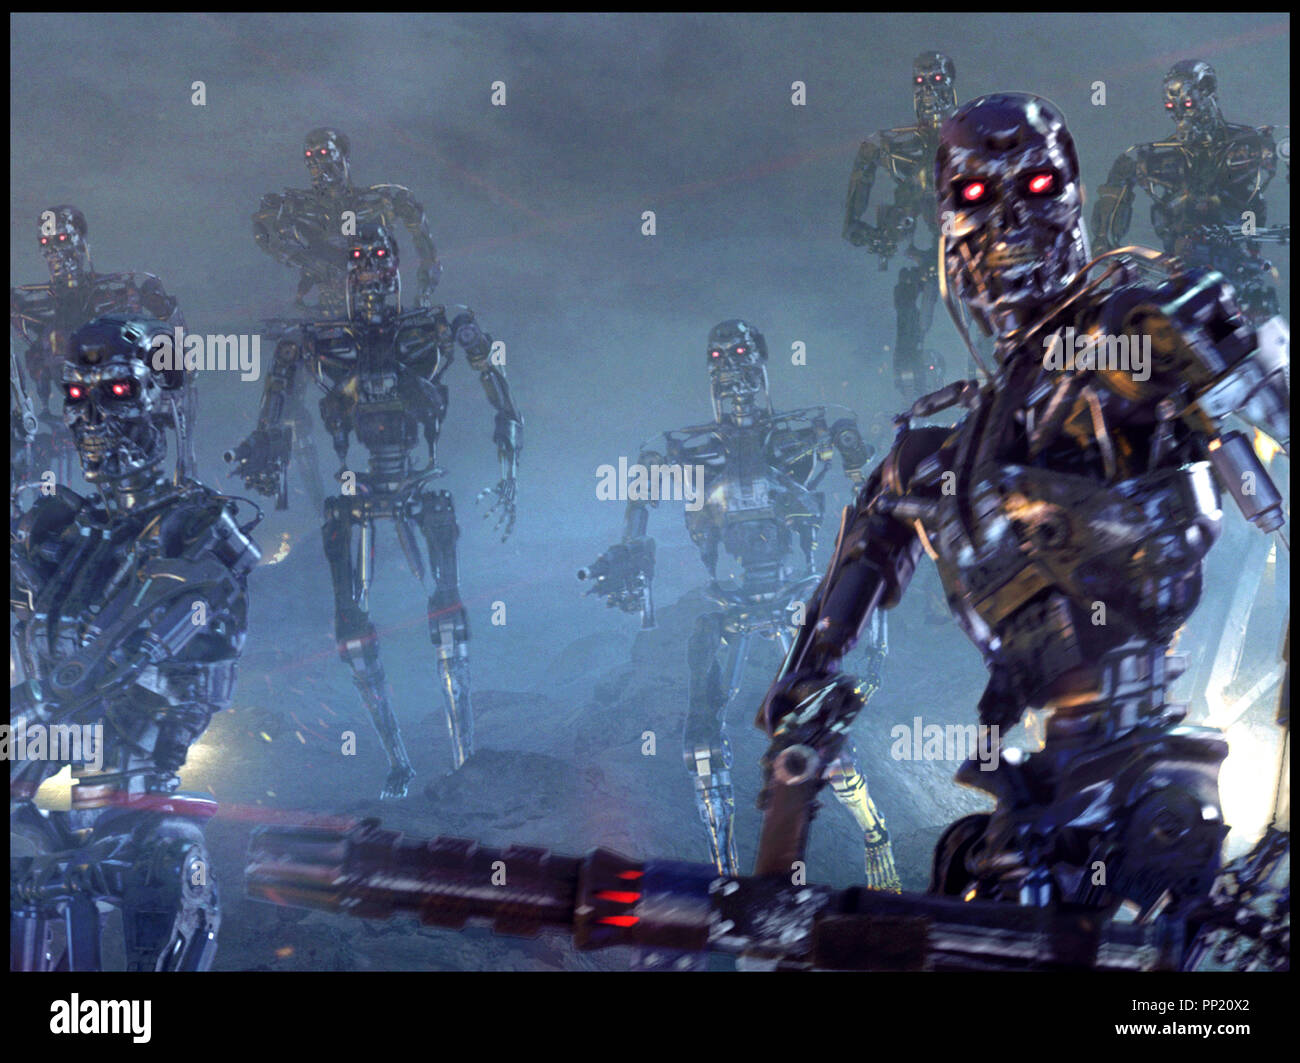 Rise Of The Robots Stock Photos & Rise Of The Robots Stock